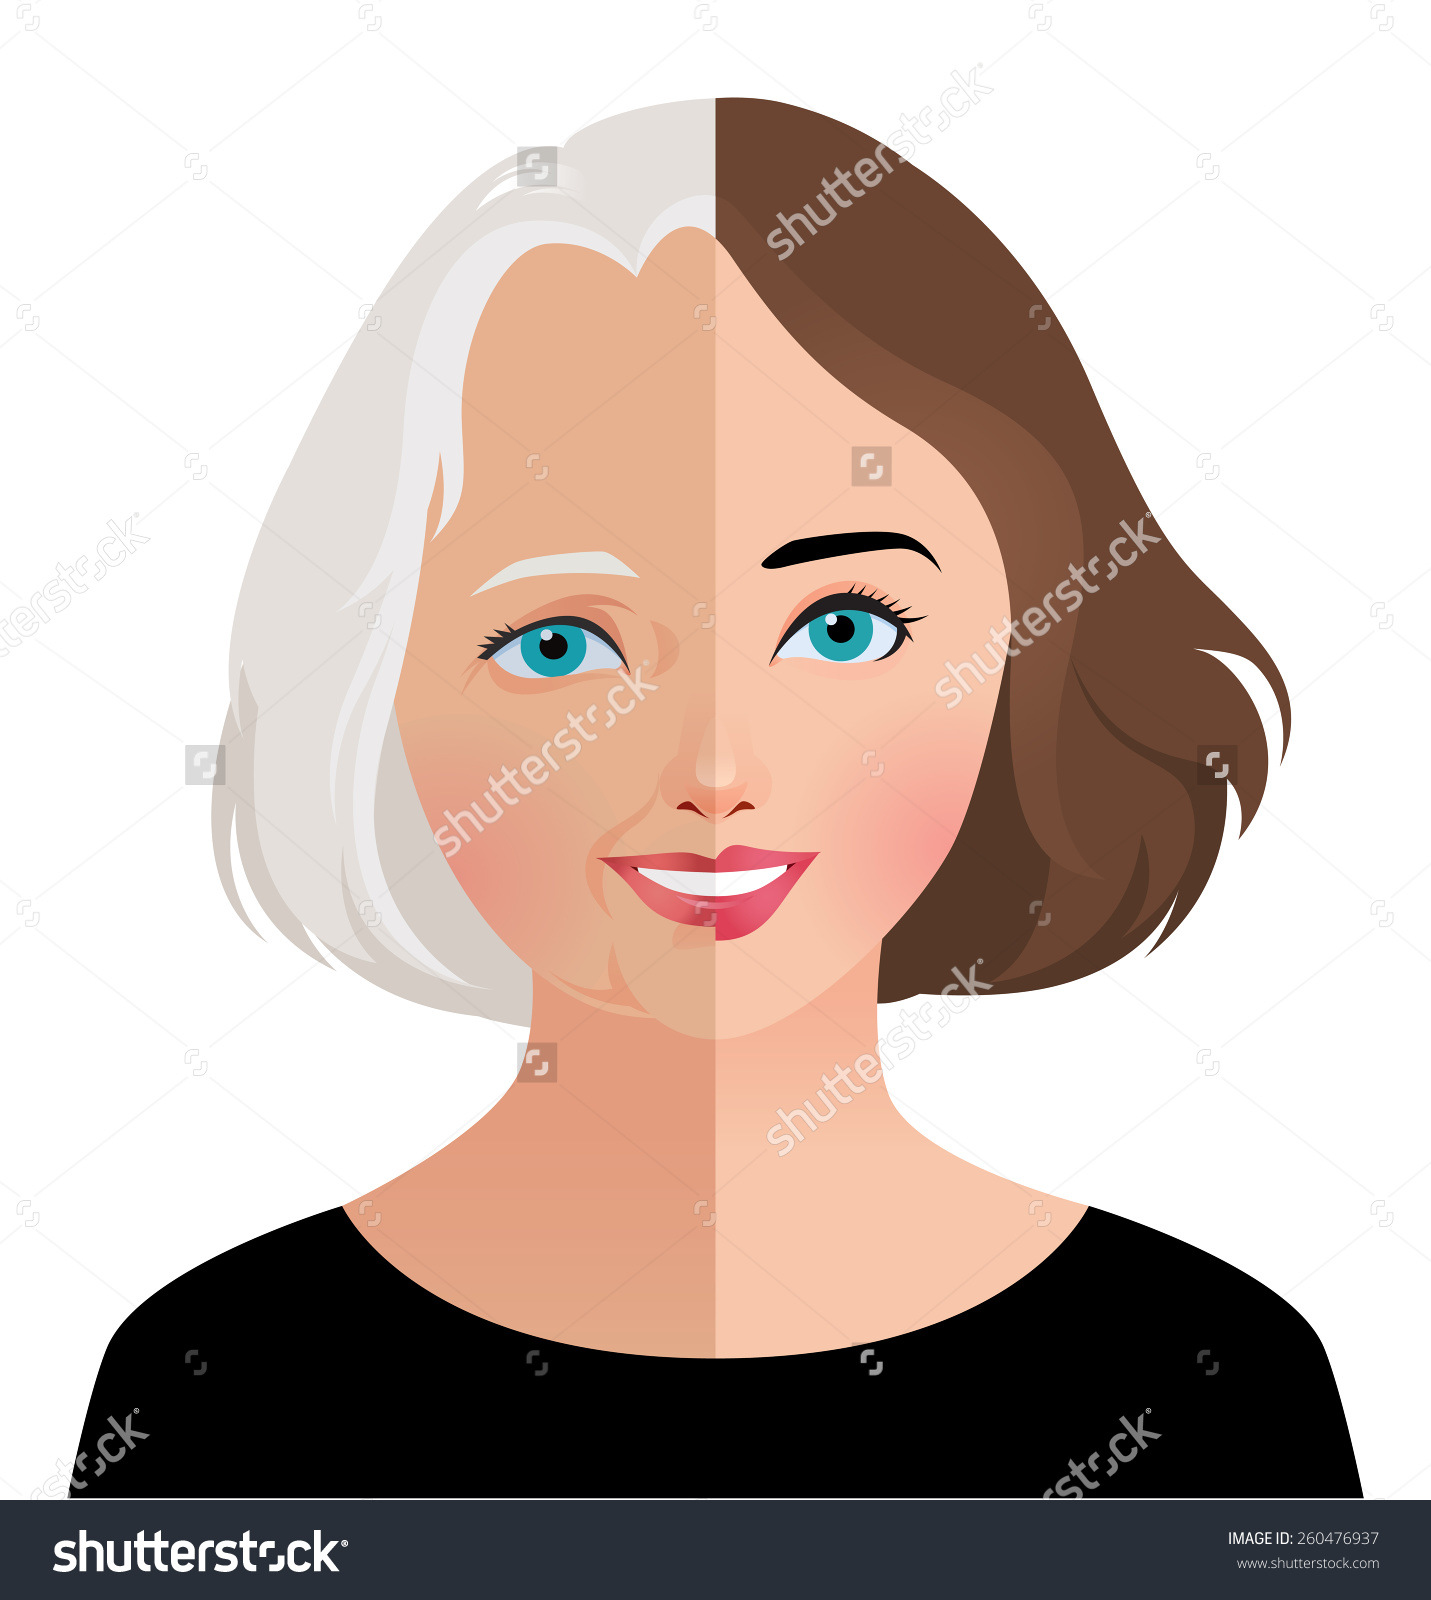 Stock Vector Illustration Beauty Skin Care Stock Vector 260476937.